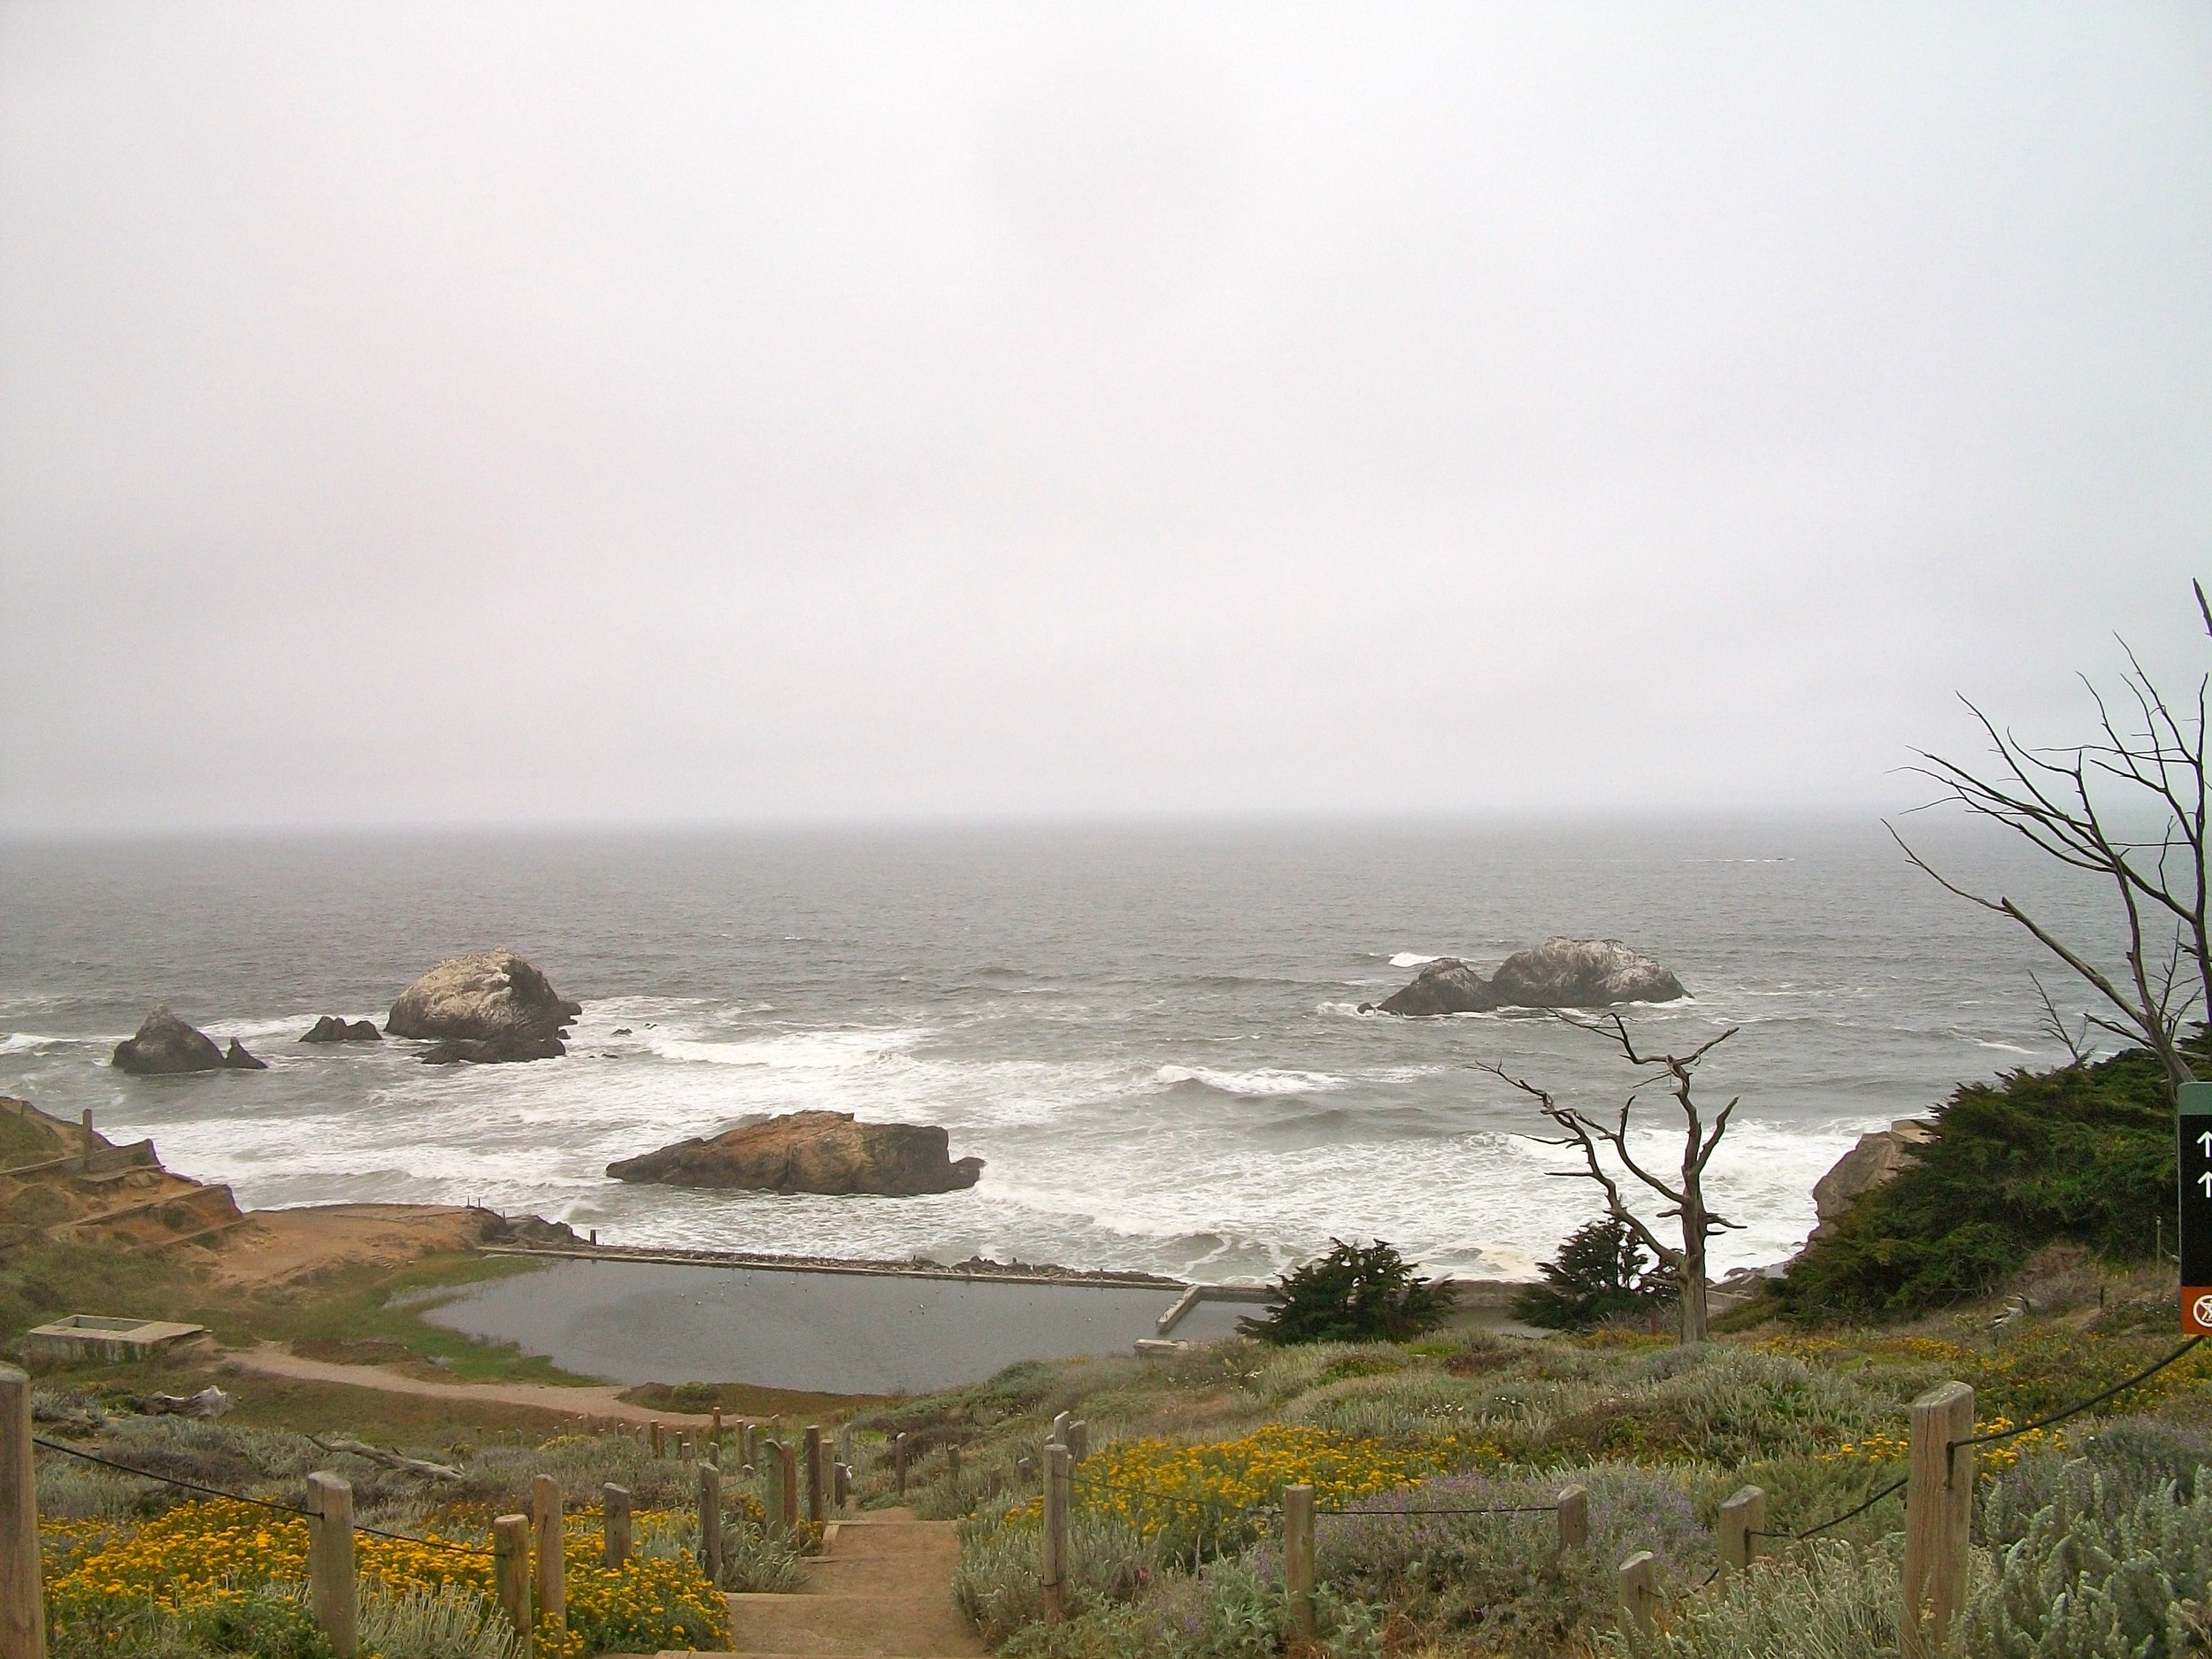 Sutro Baths, Lands End, San Francisco.